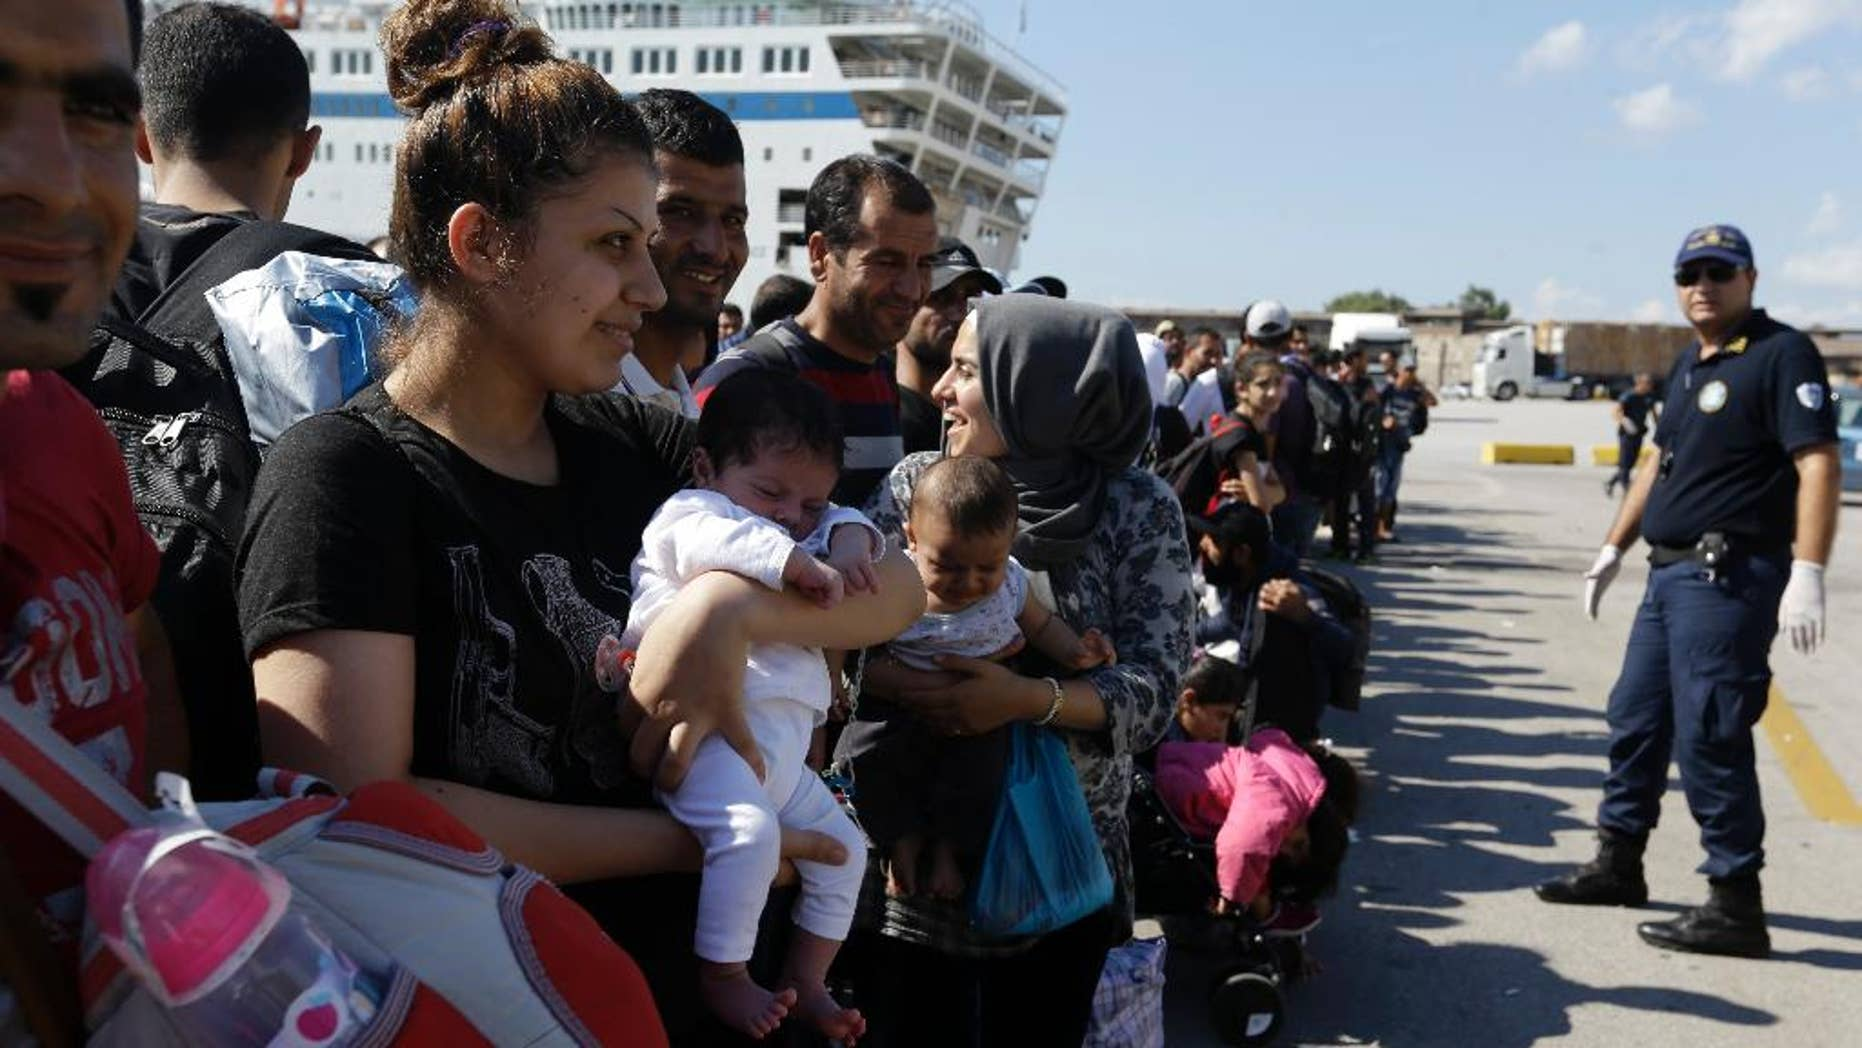 A Syrian mother, left, holds her one-month old daughter as she waits for the bus transporting them to the metro station after their arrival from the Greek island of Lesbos at the Athens' port of Piraeus, Monday, Sept. 28, 2015. The Greek ferry Elefhterios Venizelos is part of special ferry service for refugees and migrants that carries 2,500 paying passengers. More than 250,000 asylum seekers have passed through Greece so far this year. (AP Photo/Thanassis Stavrakis)